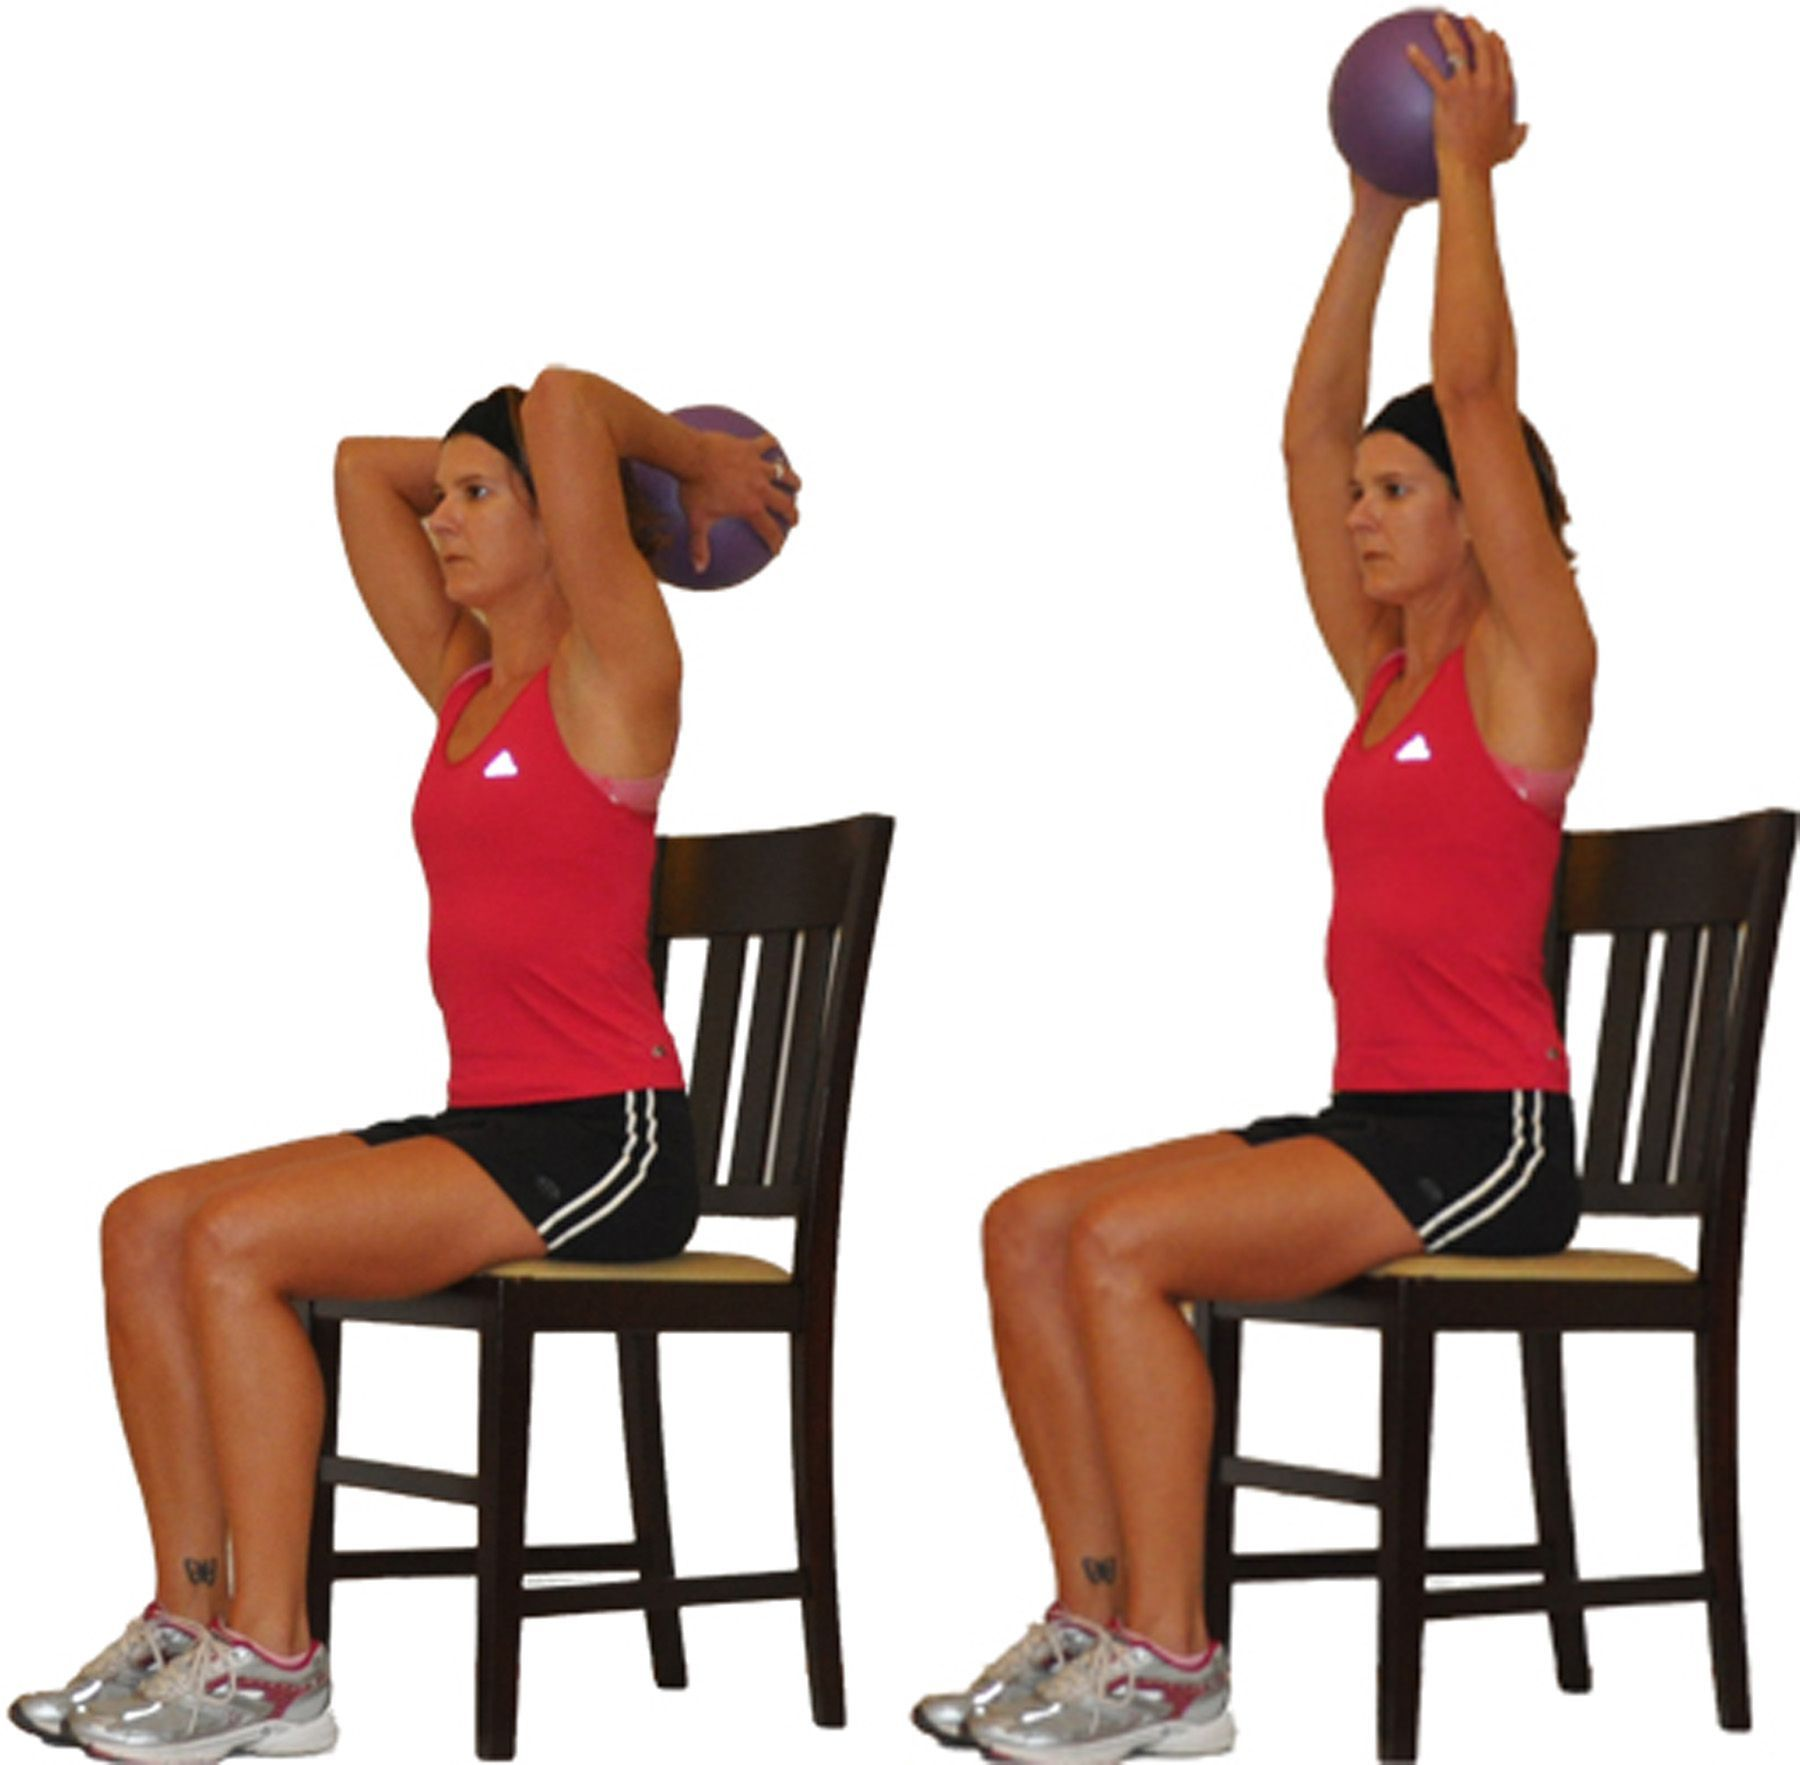 You Can Still Workout Your Upper Body From a Chair Upper